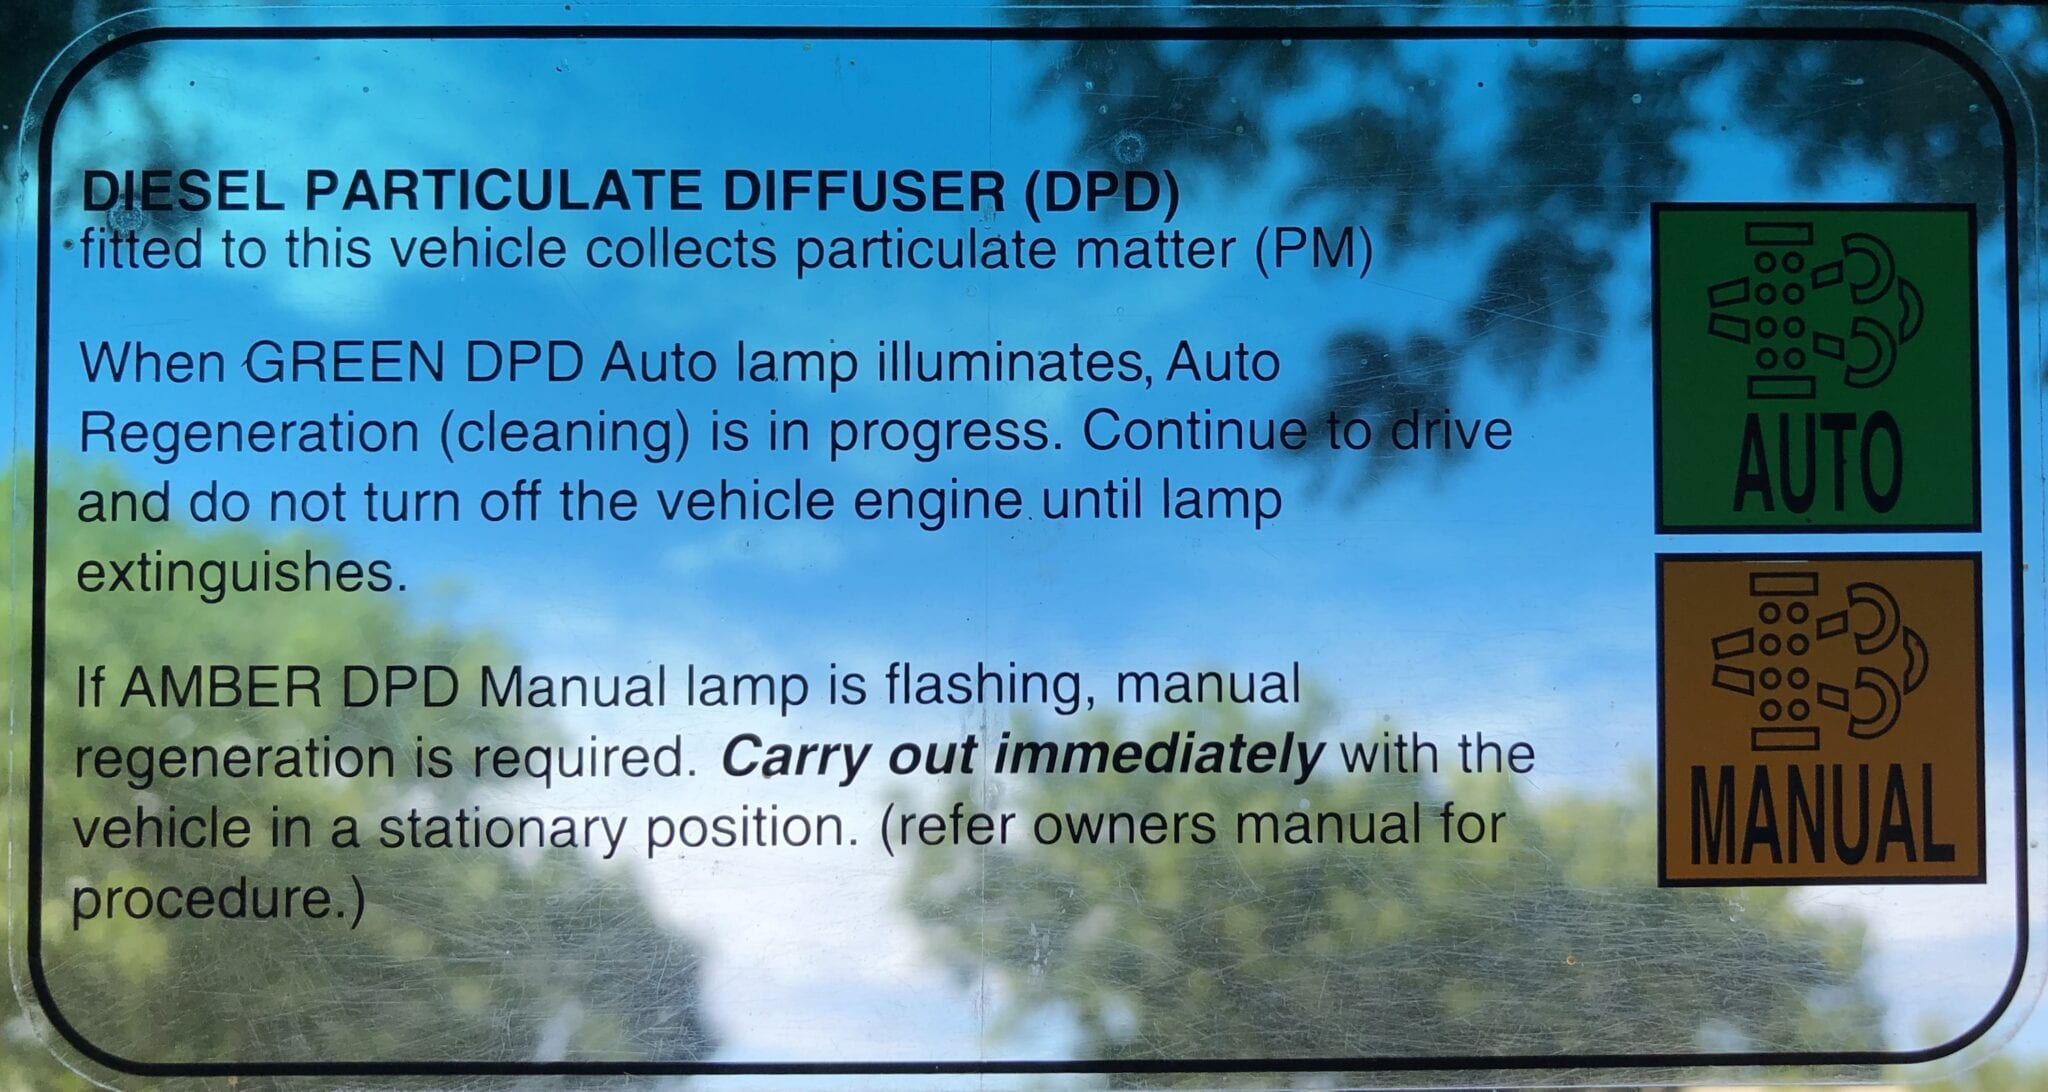 The instructions for the diesel particulate filter (diffuser) or DPD on a 2016 Isuzu NPS.